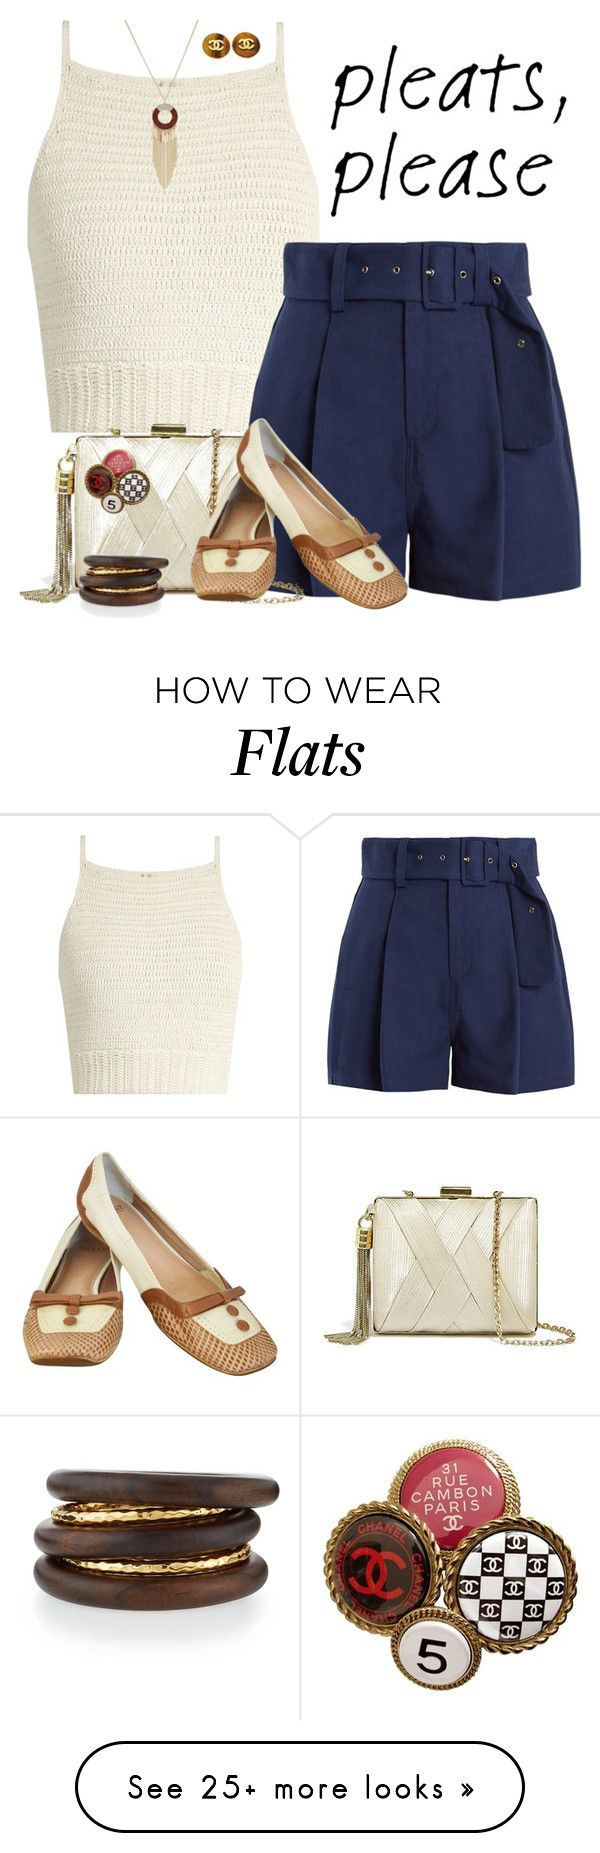 """Pleated summer"" by joyfulmum on Polyvore featuring SHE MADE ME, Sea, New York, GUESS by Marciano, Bally, Chanel, Thalia Sodi and NEST Jewelry"